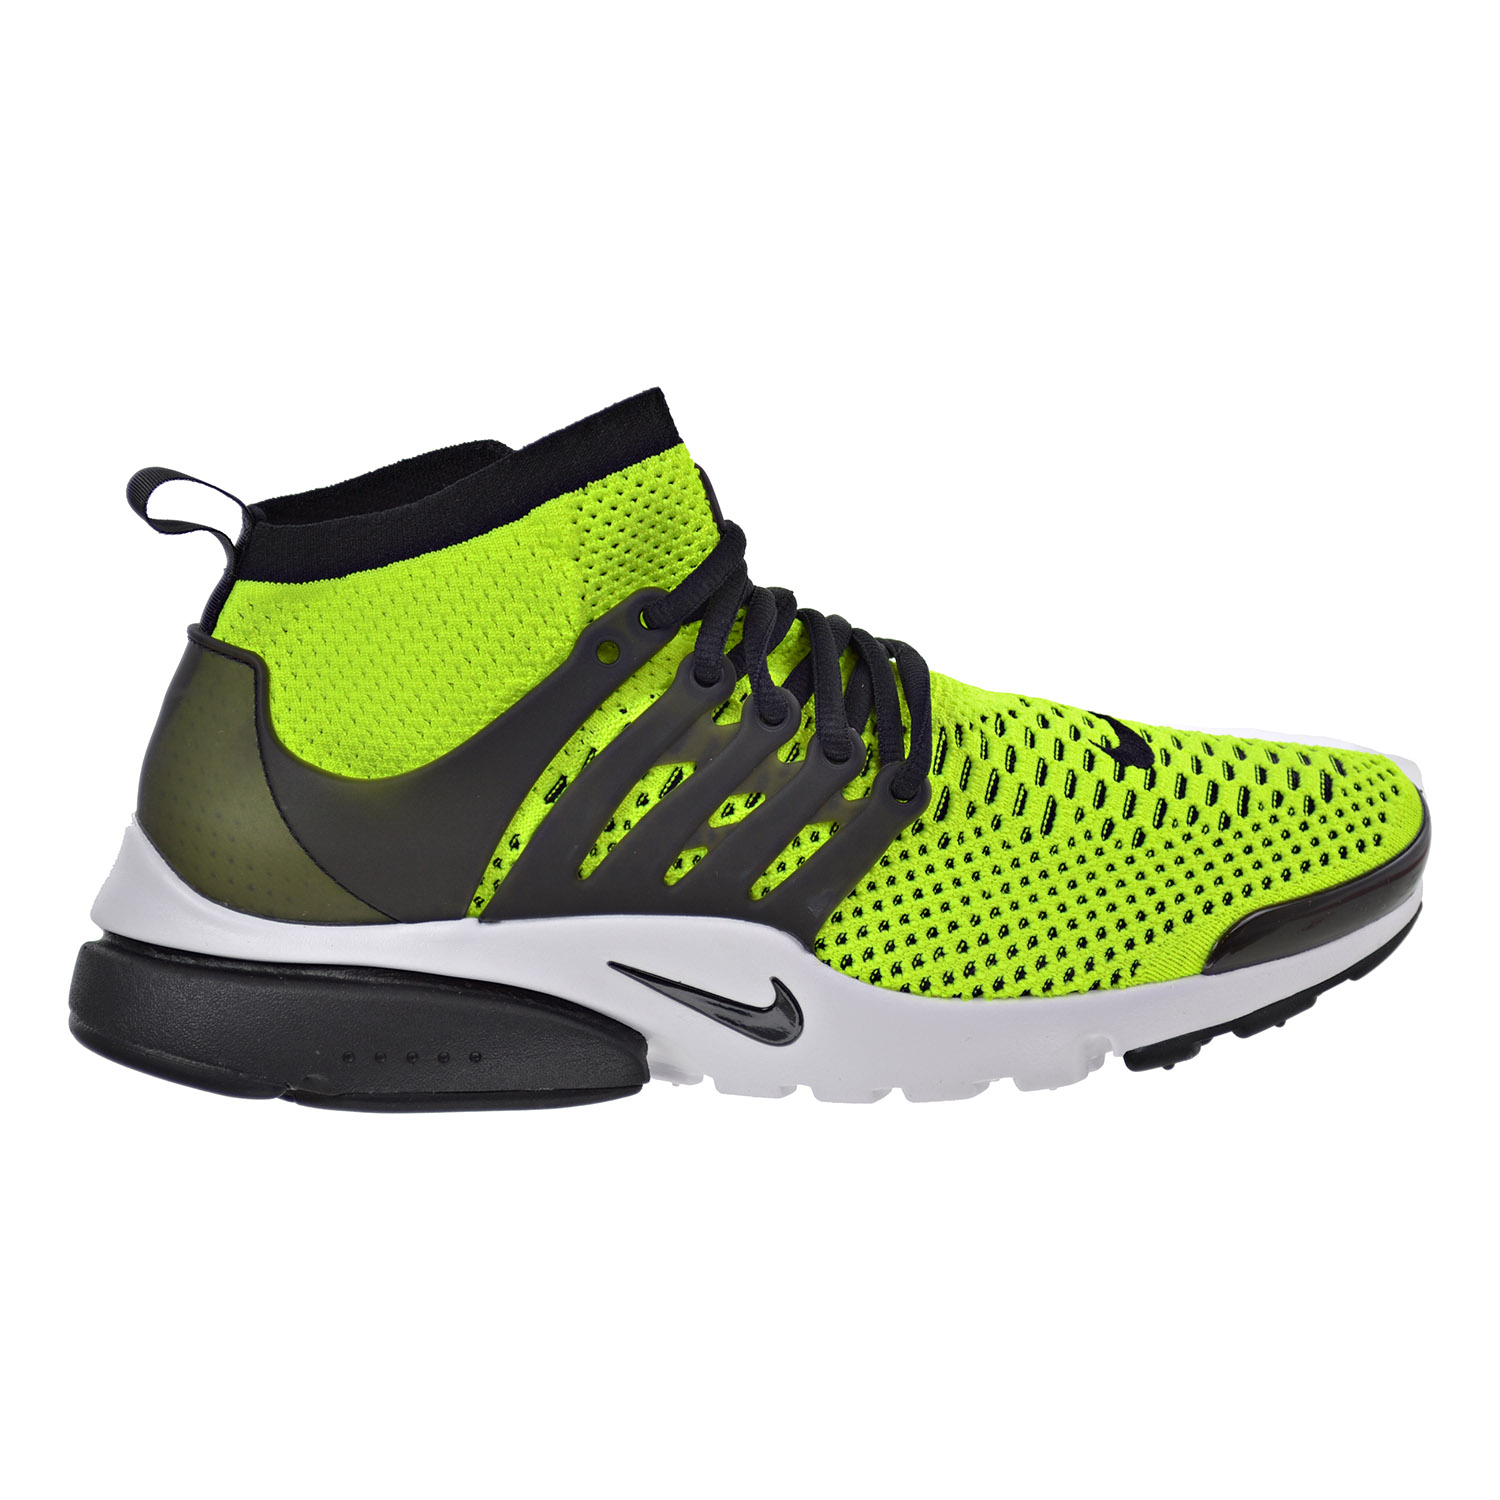 Nike Air Presto Flyknit Ultra Men's Shoes Volt Black White 835570-701 (9.5 D(M) US) by Nike